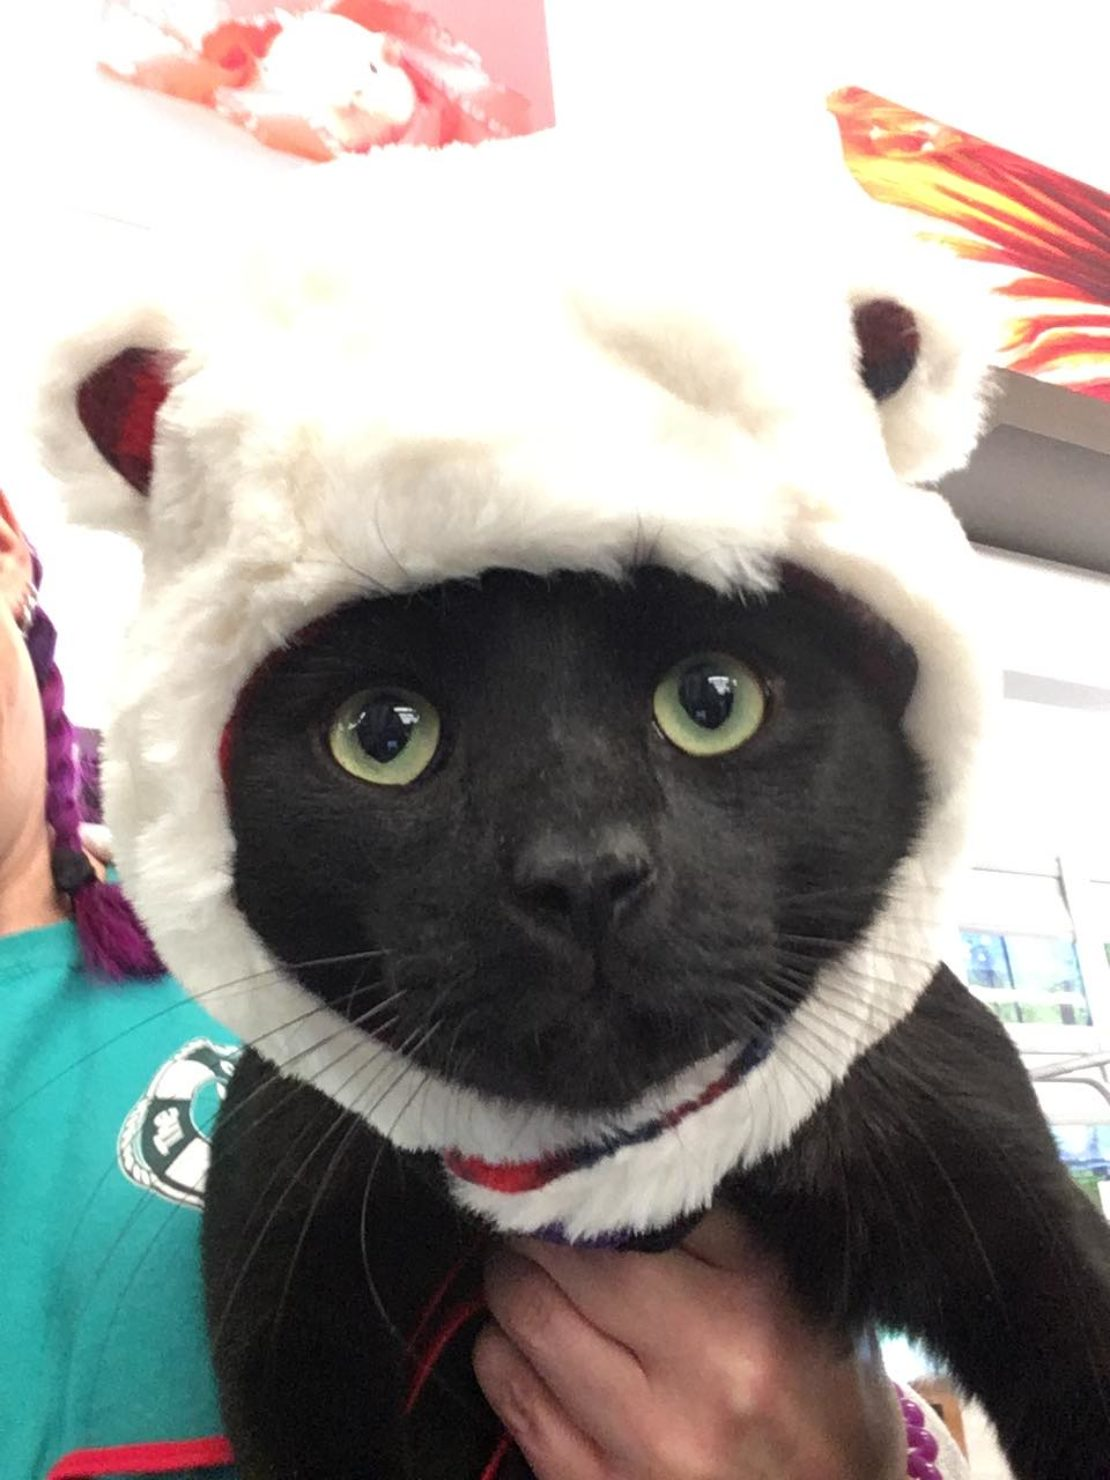 Black cat with a silly polar bear hat on. His face with its green eyes shows.